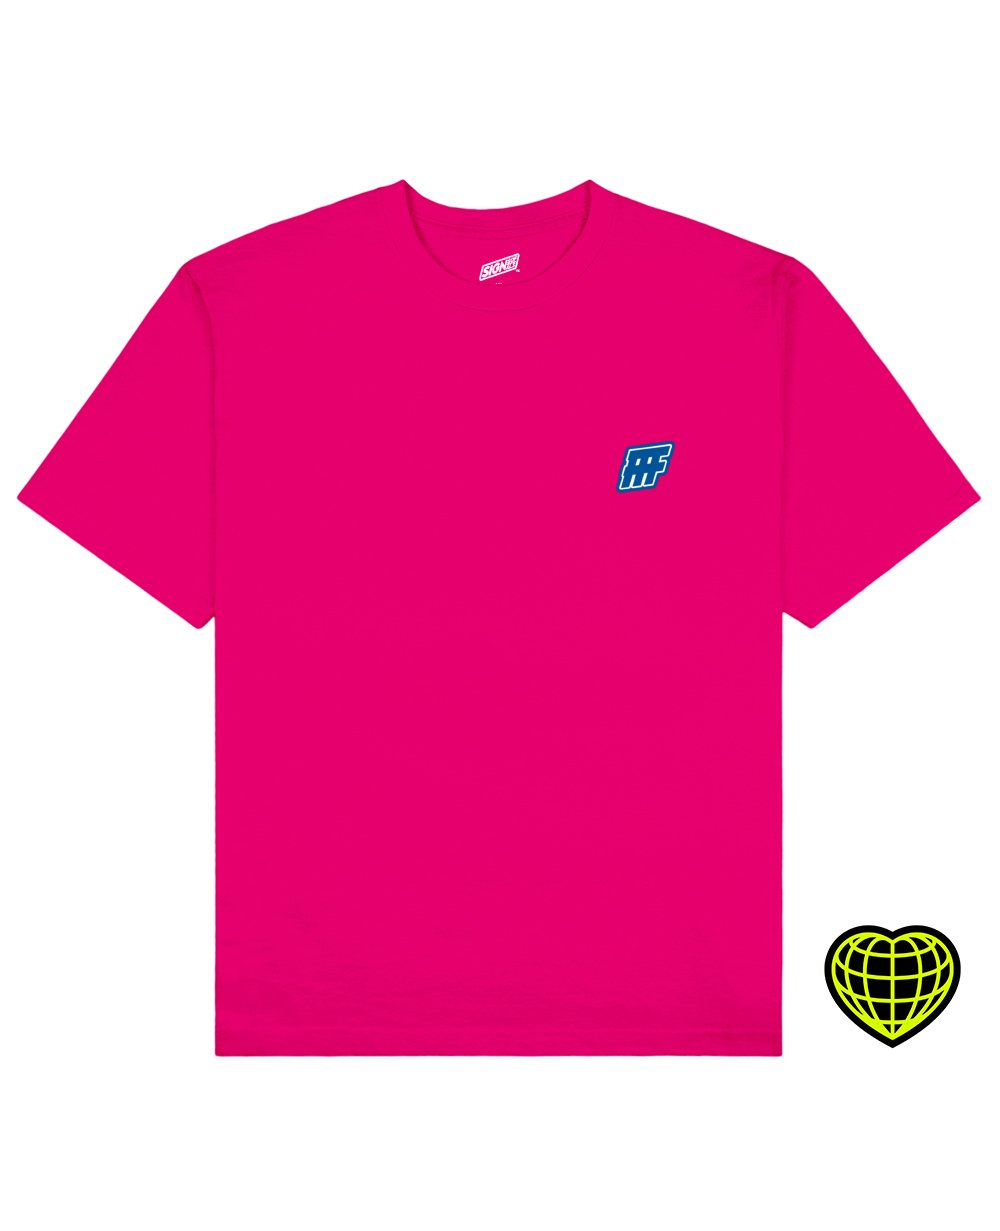 FFF Print T-shirt in Fresh Pink - T-shirts - Signs of Signals - BRANMA